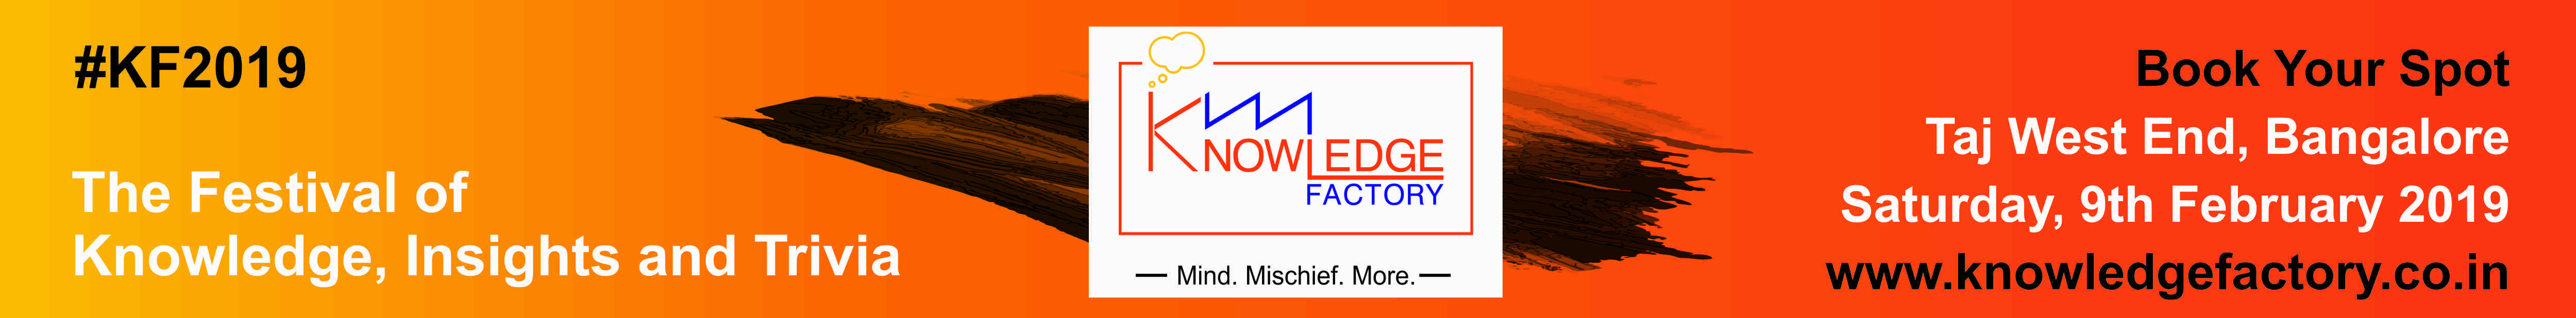 Knowledge Factory